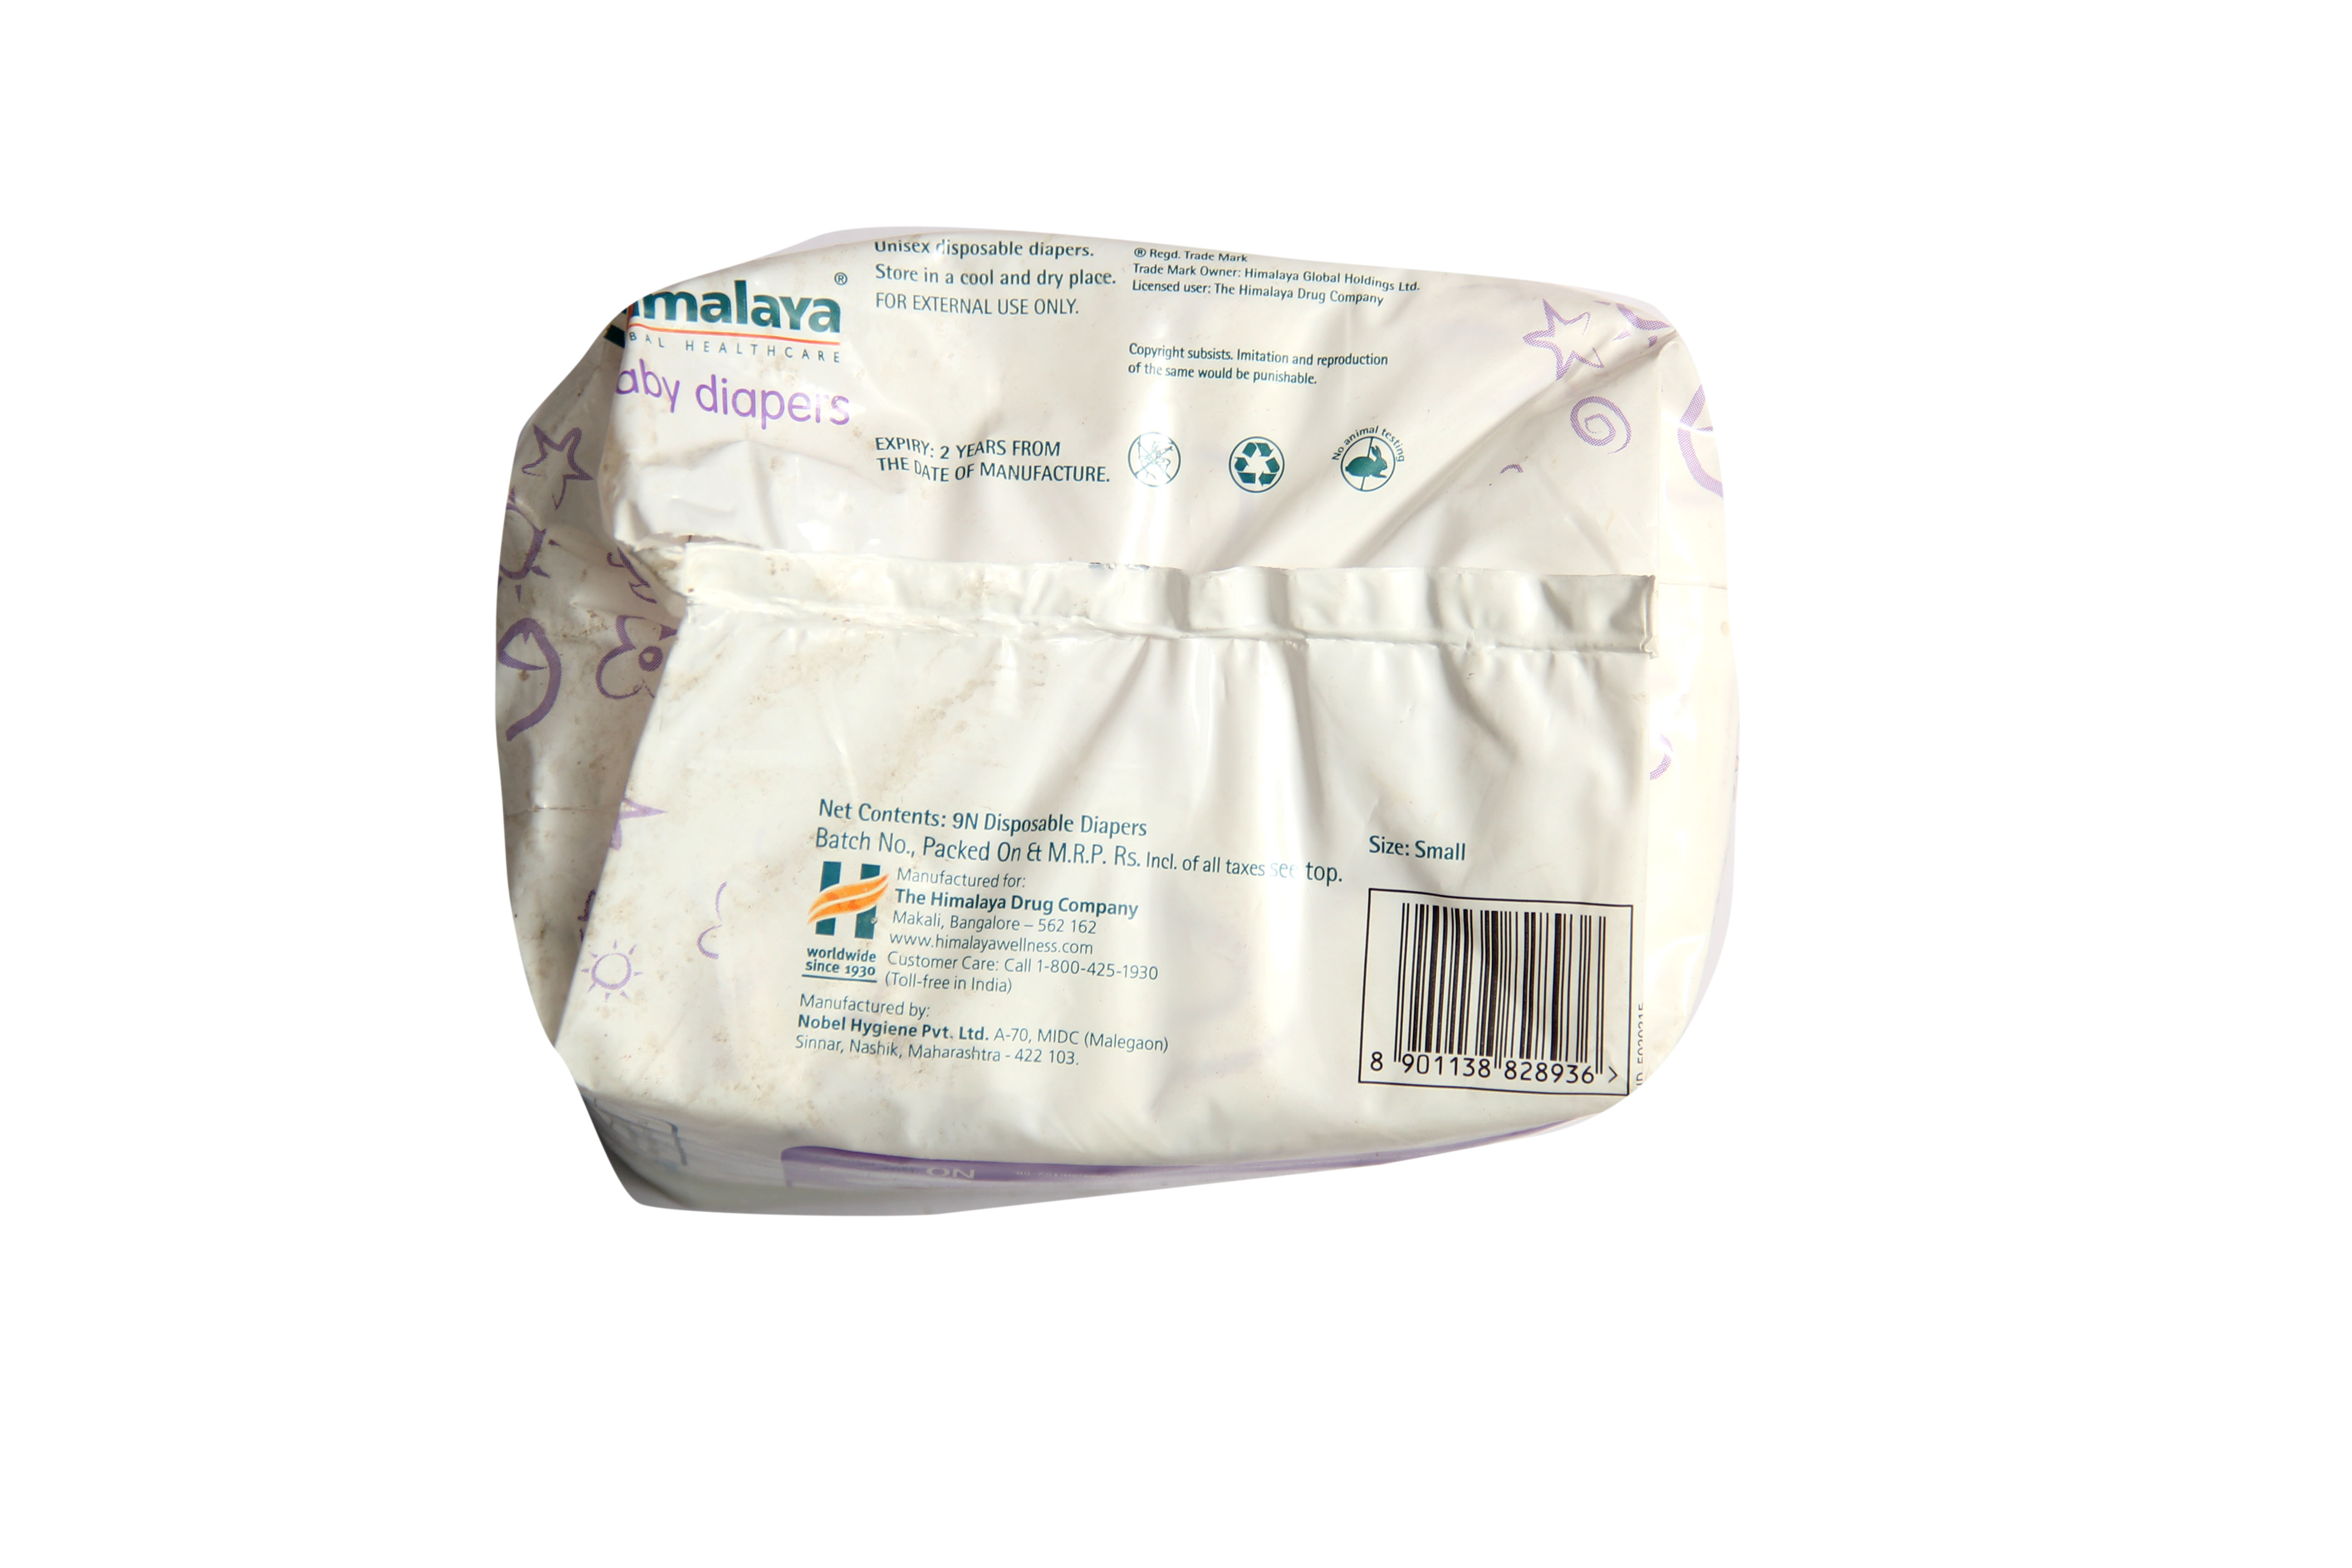 Himalaya Baby S Size Diapers 9 Pc